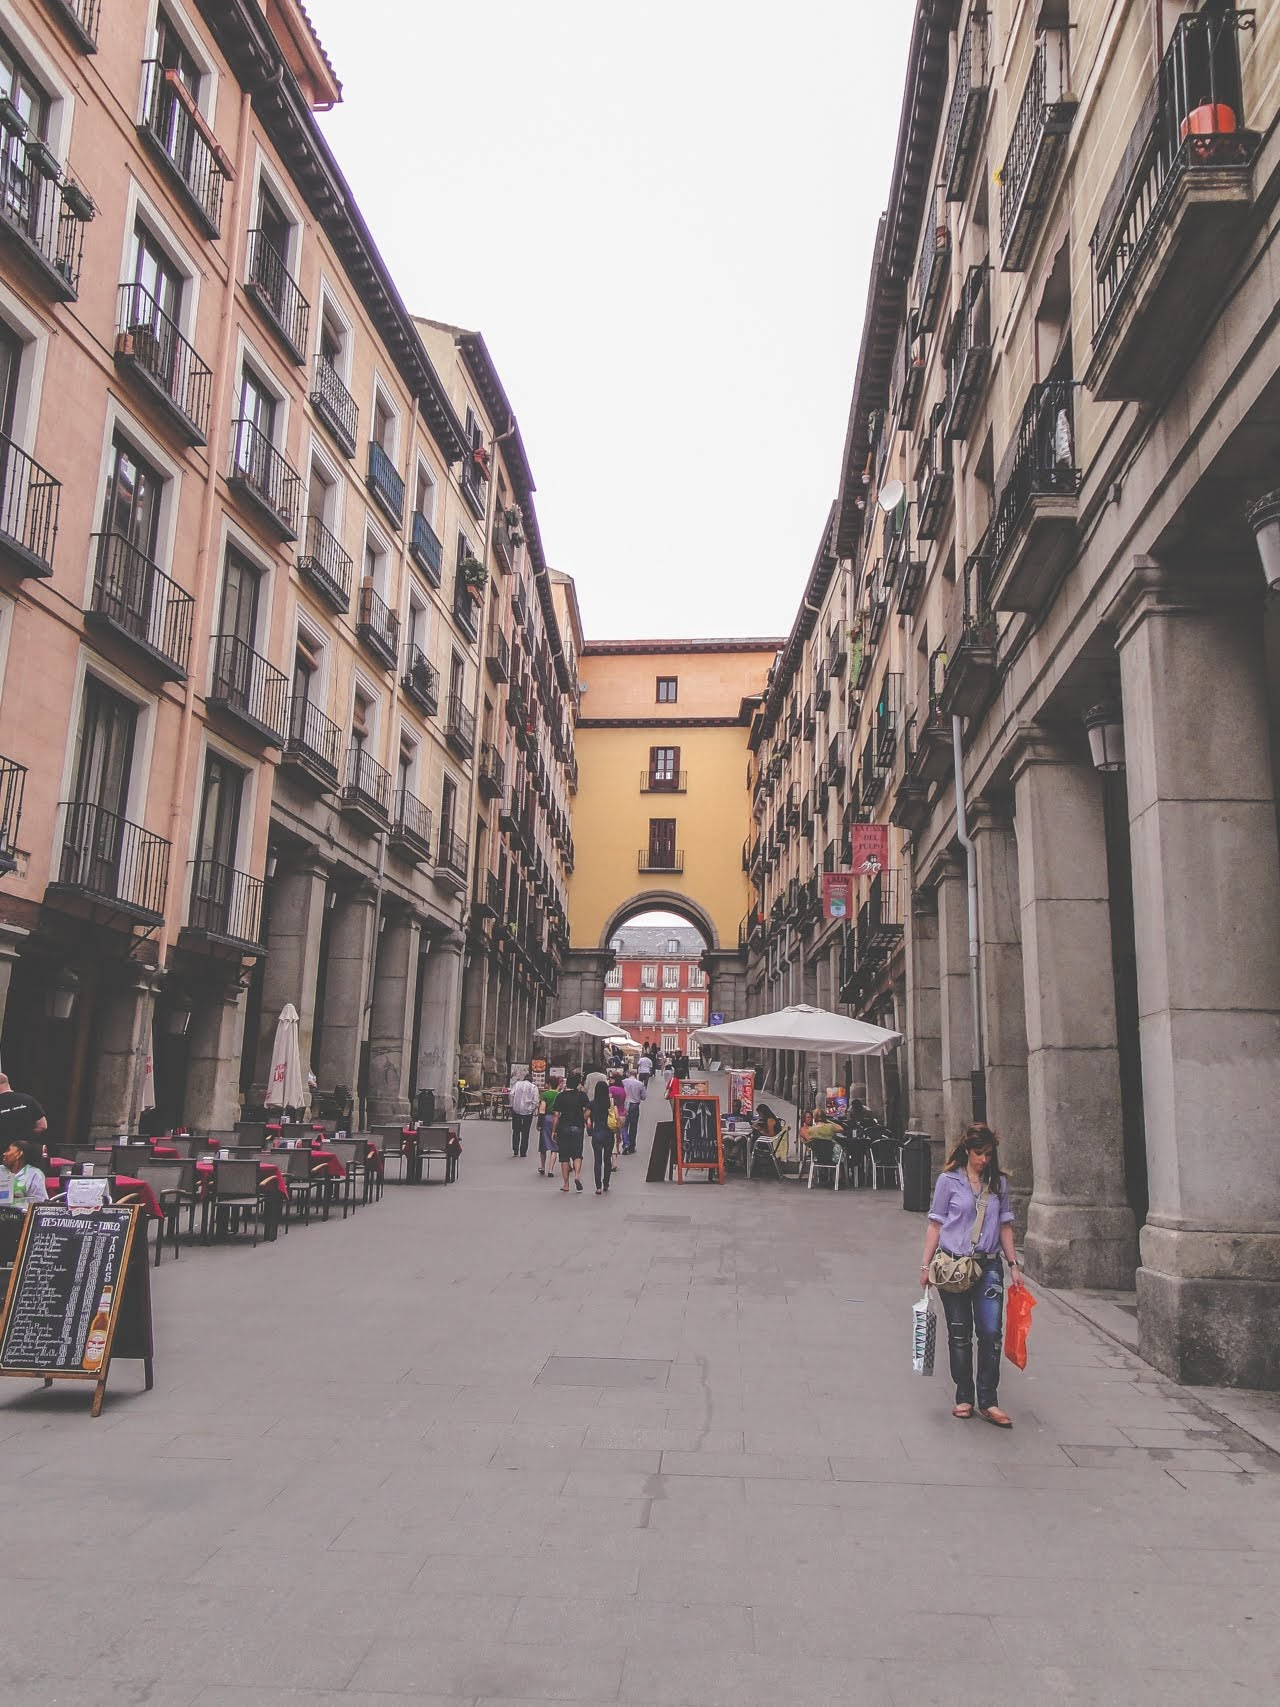 The streets around La Plaza Mayor are filled with restaurants and shops